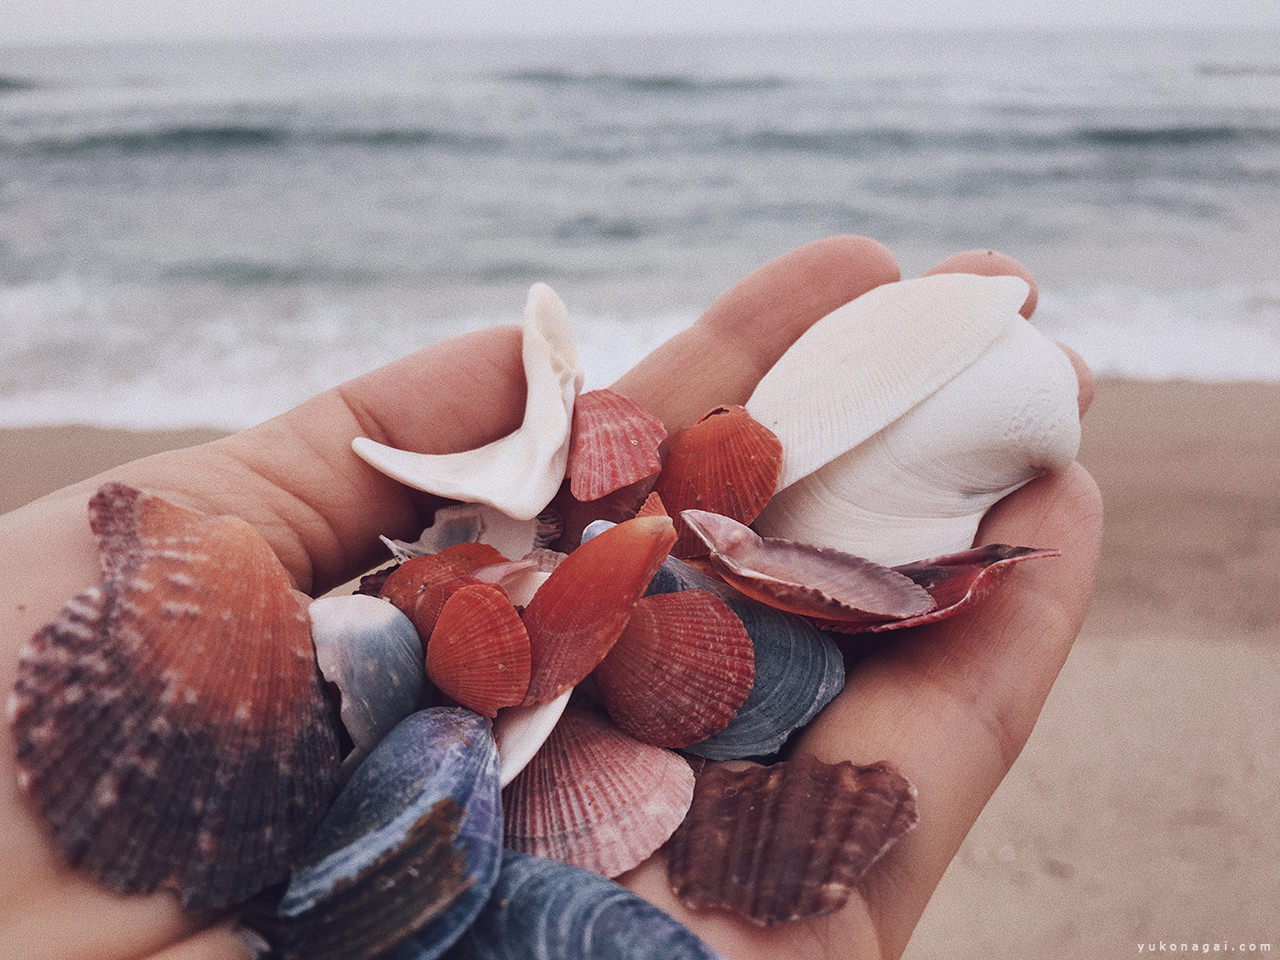 Sea shells in a cupped hand.